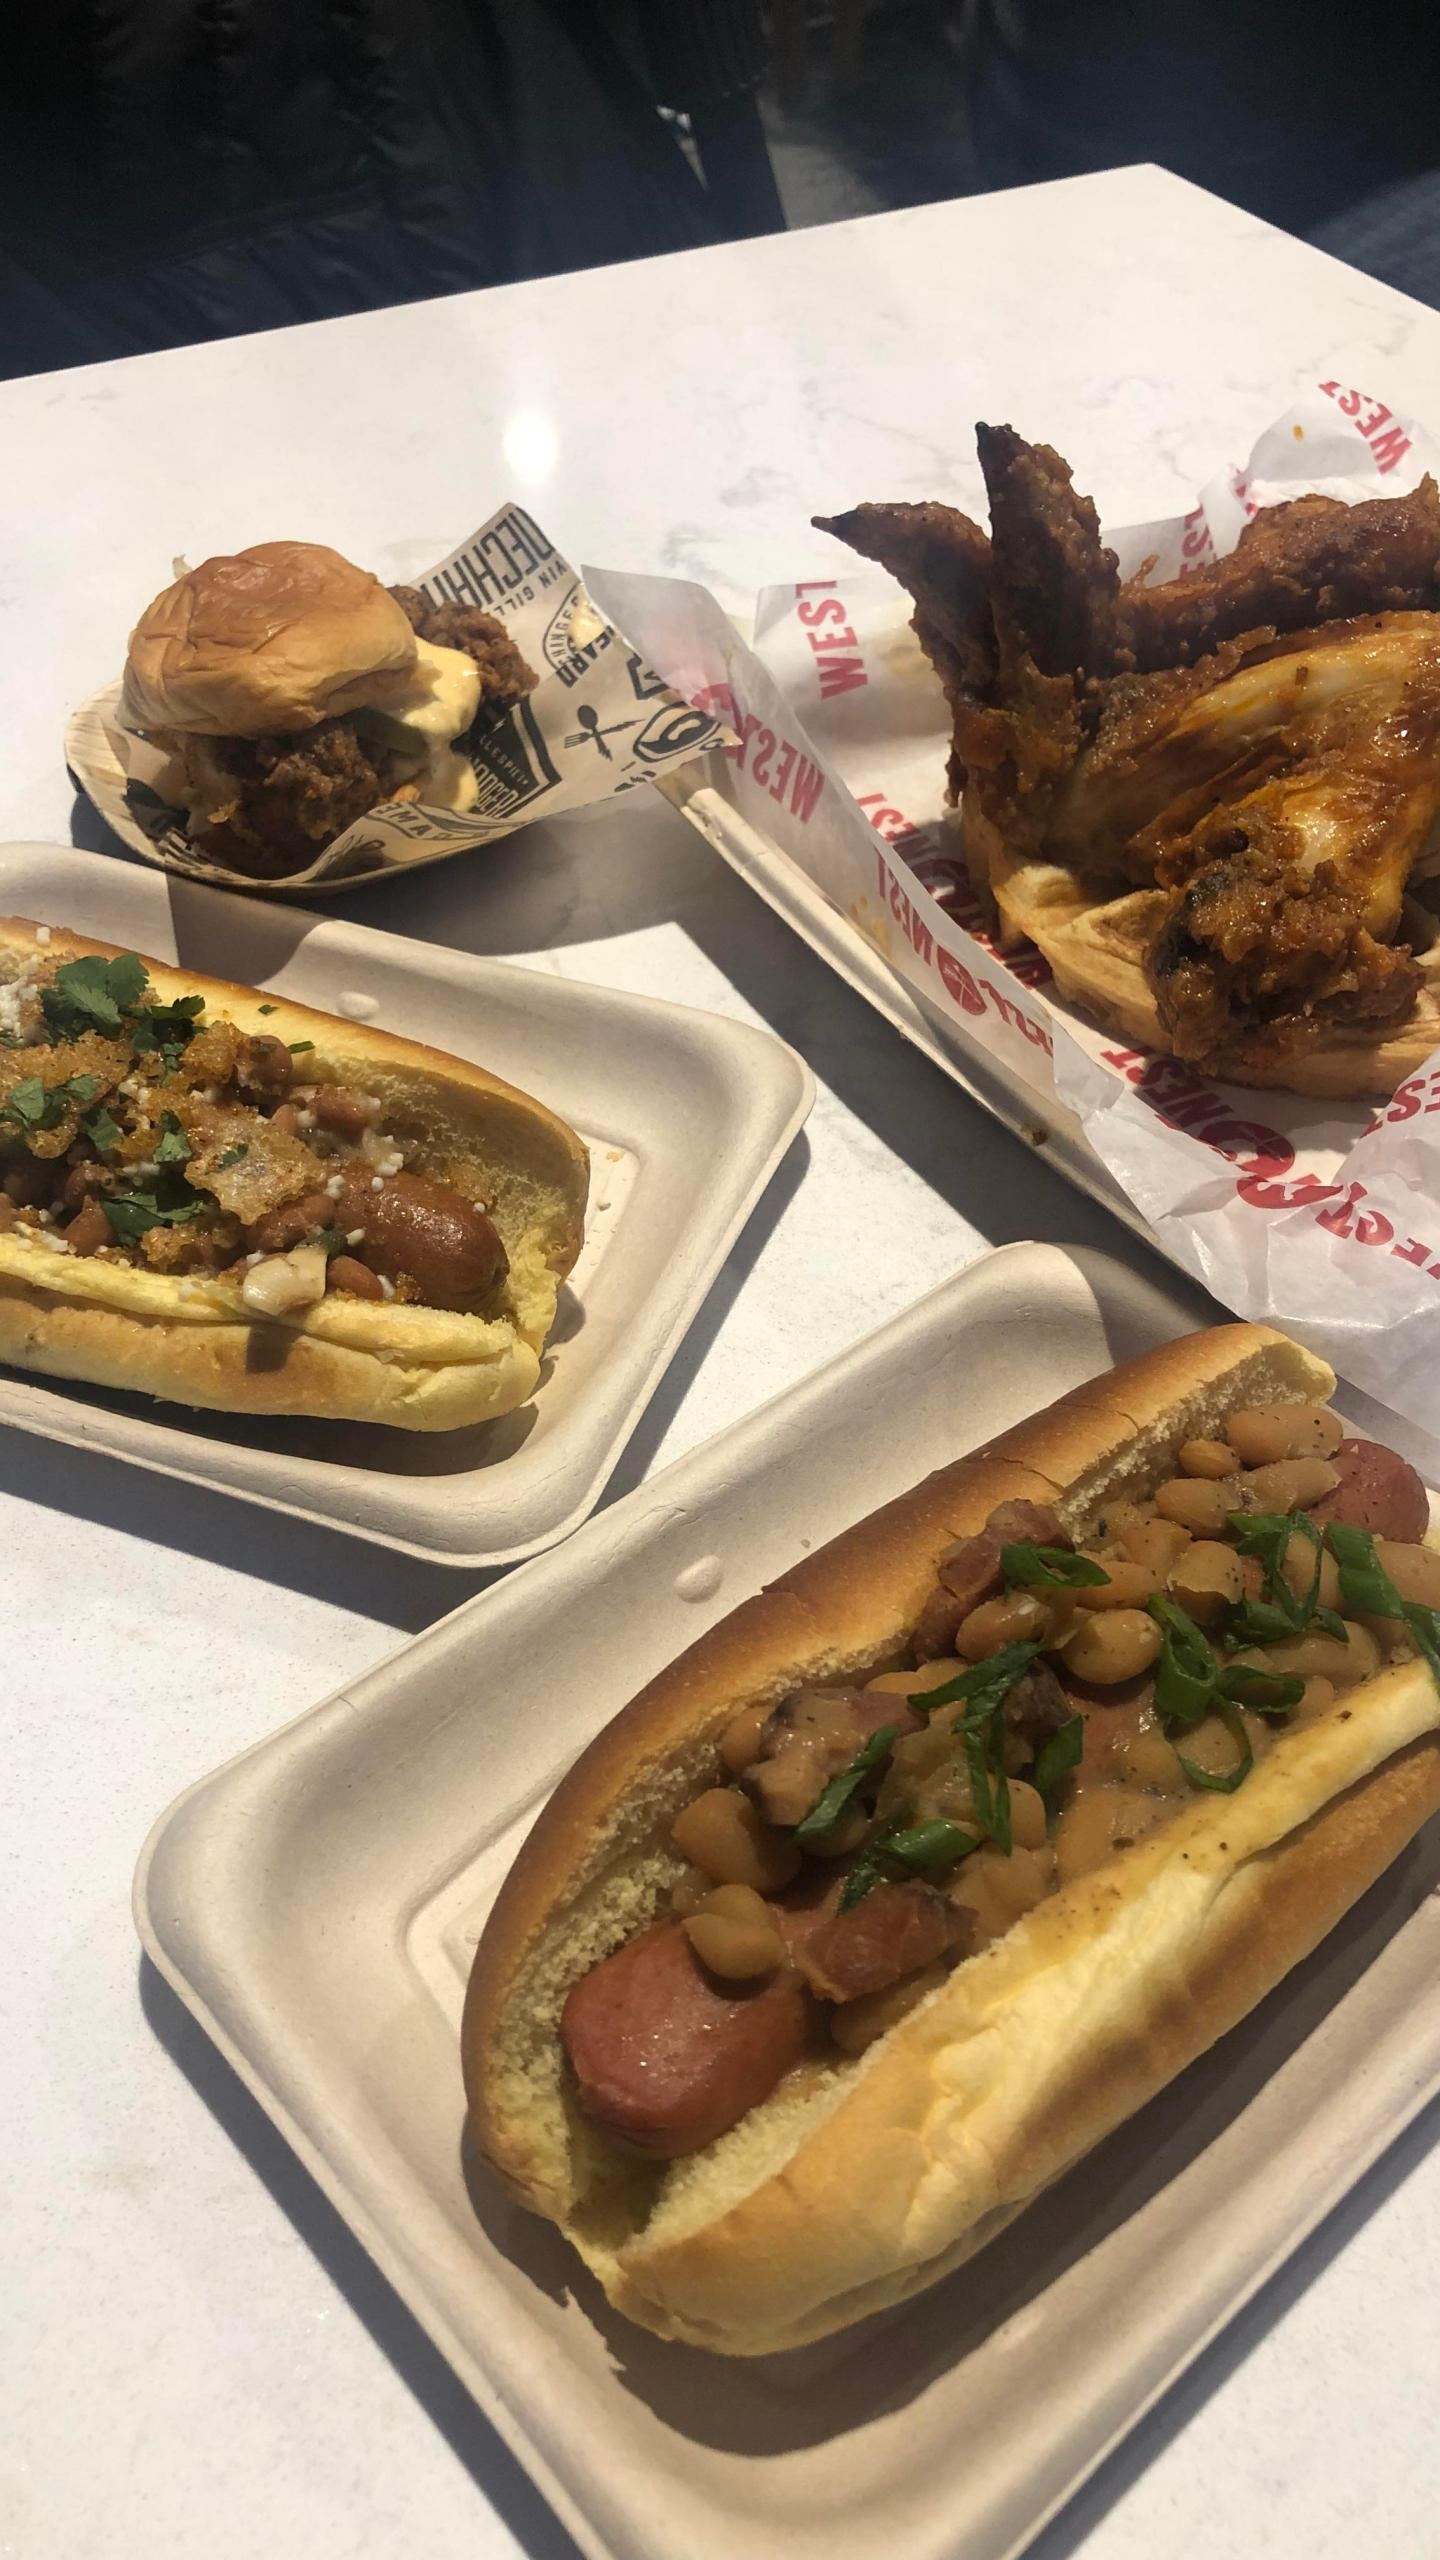 Food and Beverage at Mercedes-Benz Stadium 4